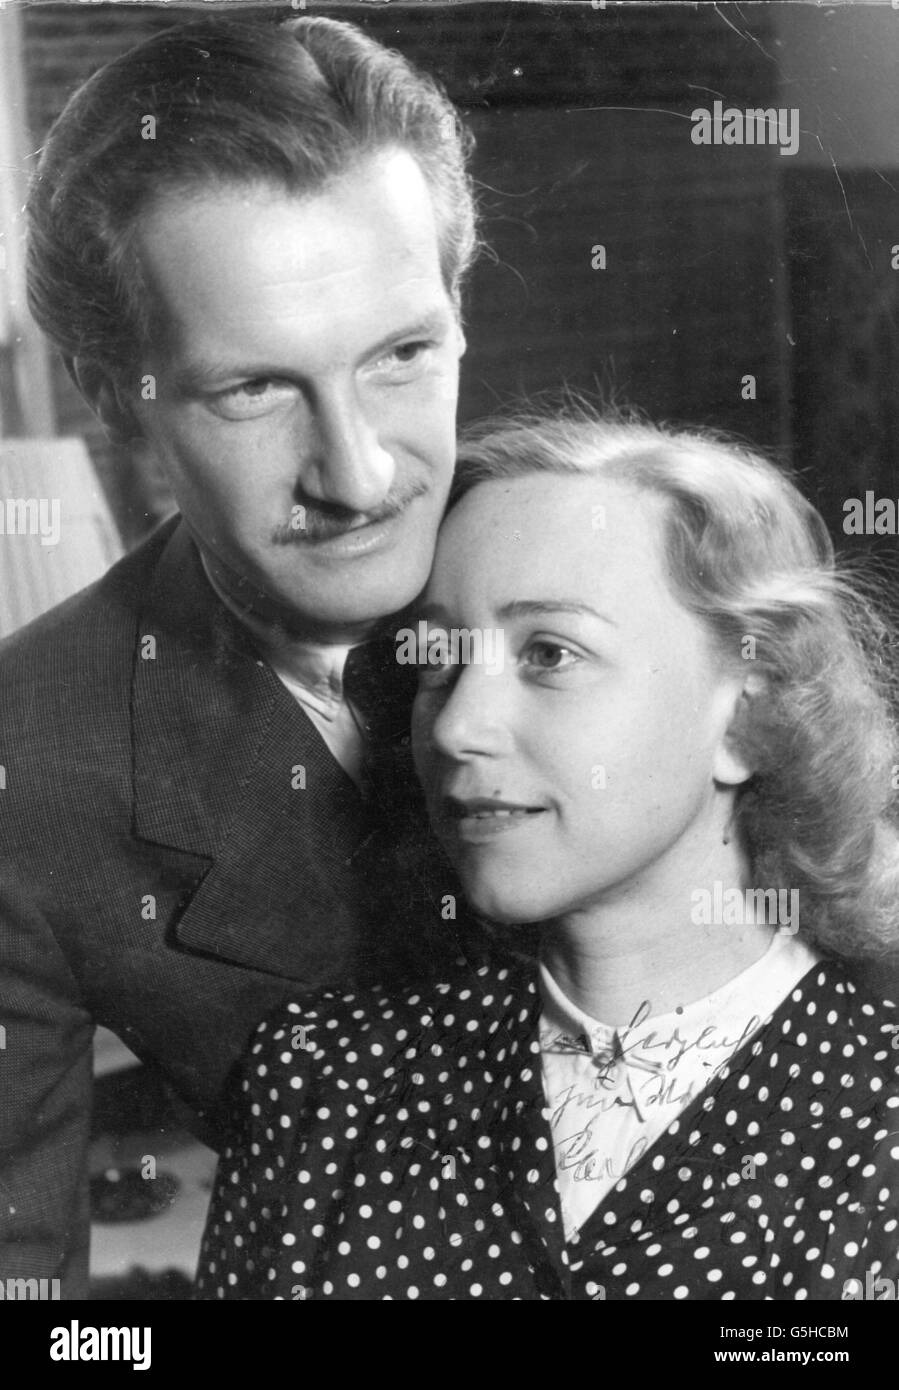 Schoenboeck, Karl, 4.2.1909 - 24.3.2001, Austrian actor, portrait, with not identified person, autograph, circa - Stock Image